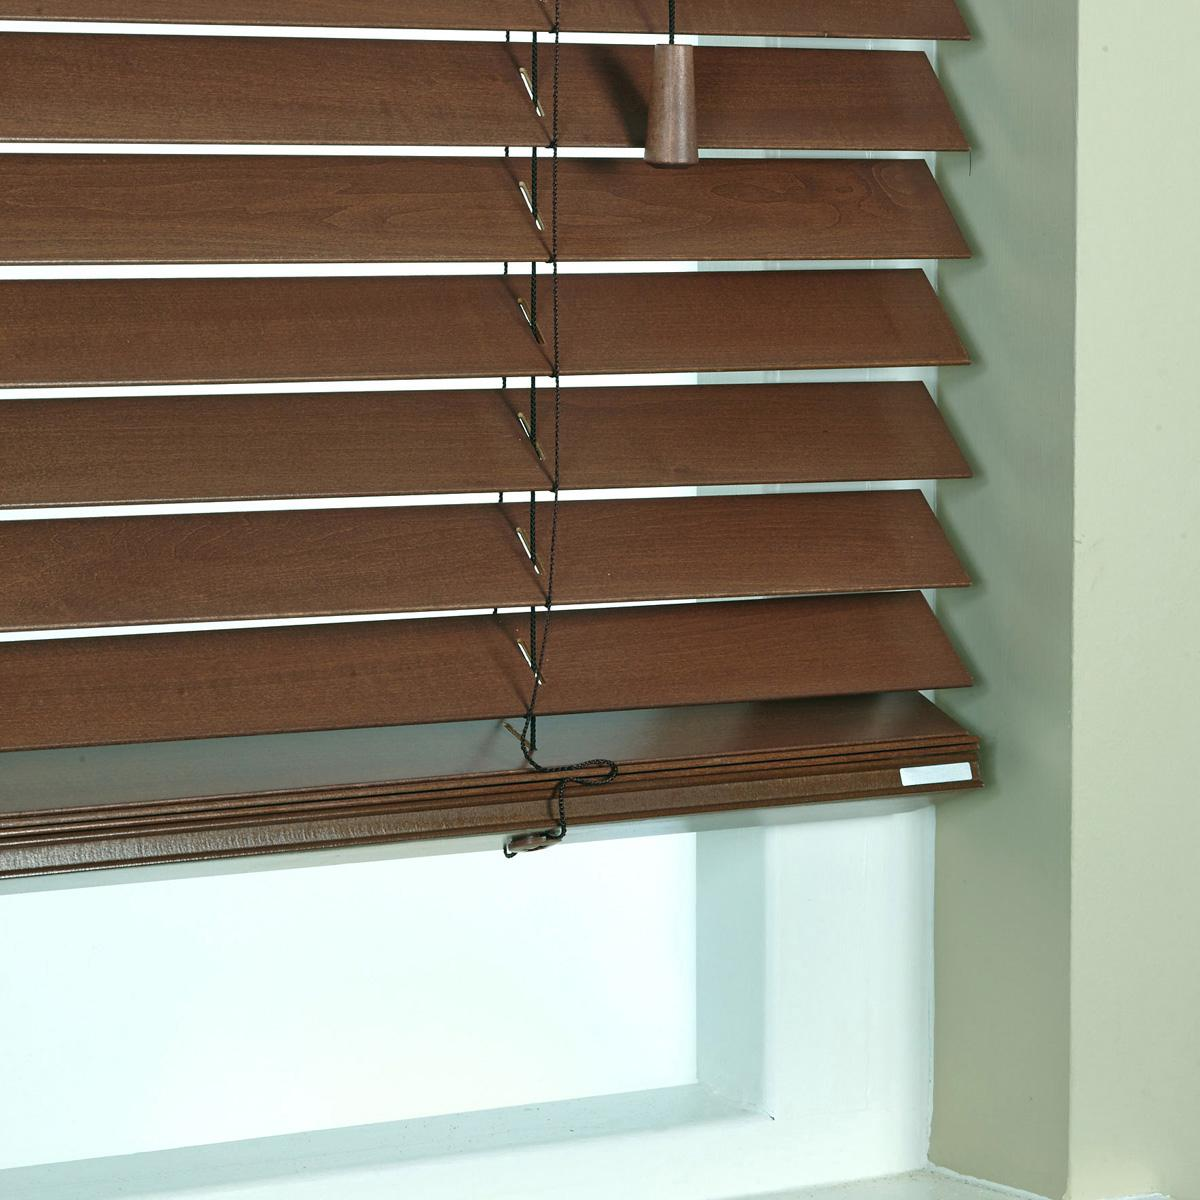 Stockists of Chestnut 50mm Elementi Wood Venetian Blind